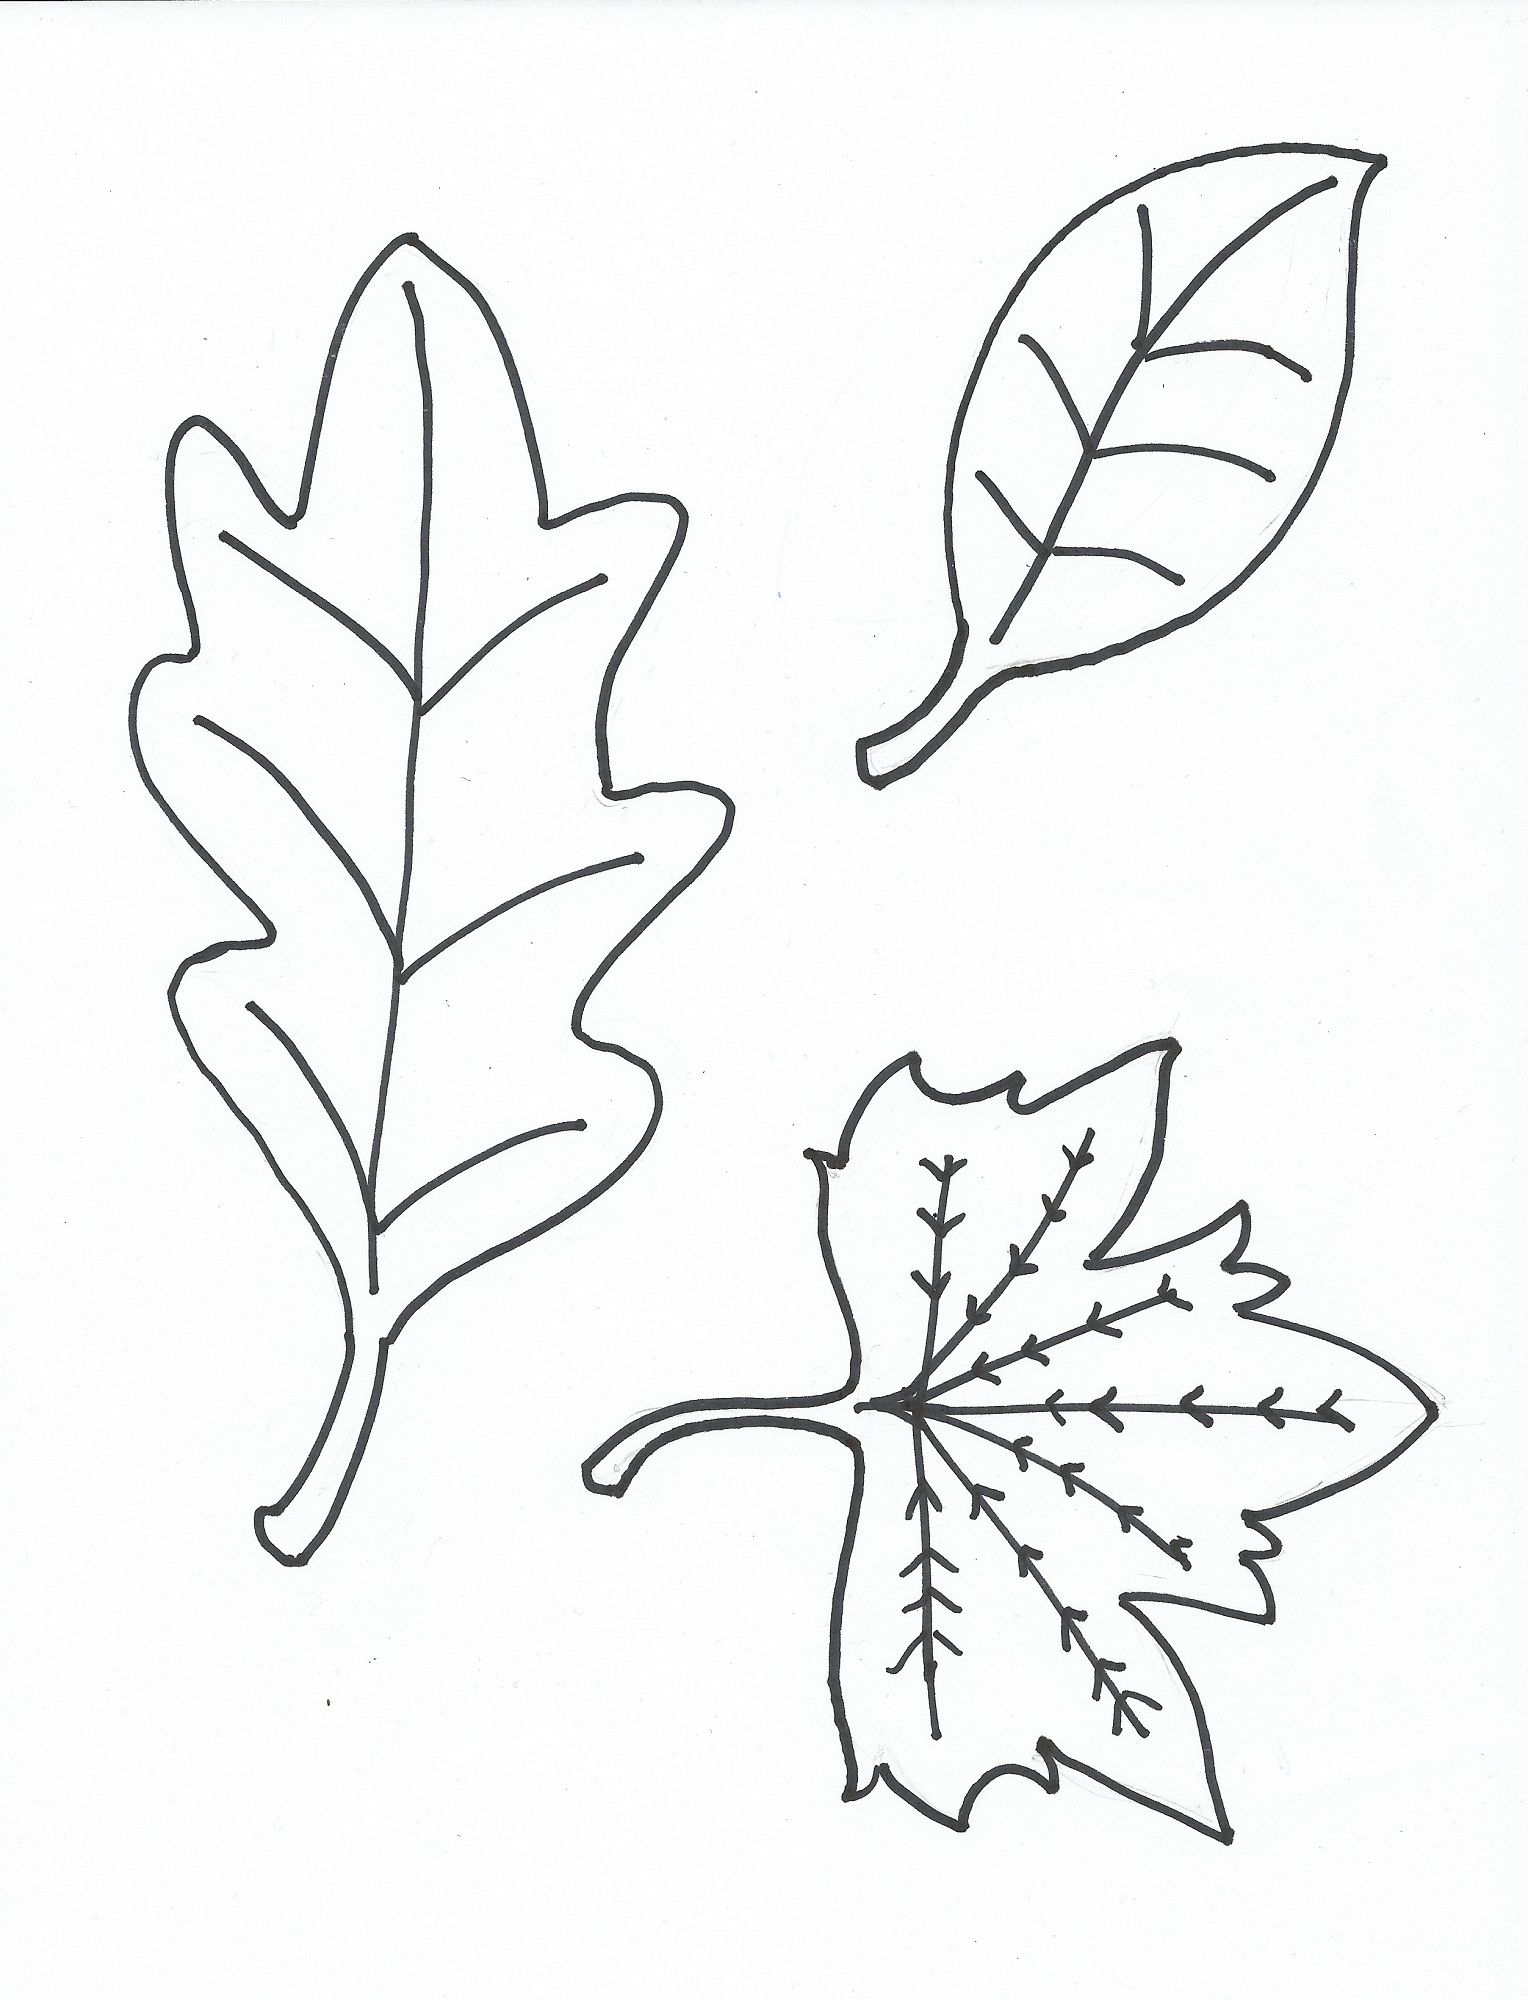 leaf coloring pages for preschool activity shelter - Leaf Coloring Pages Preschool